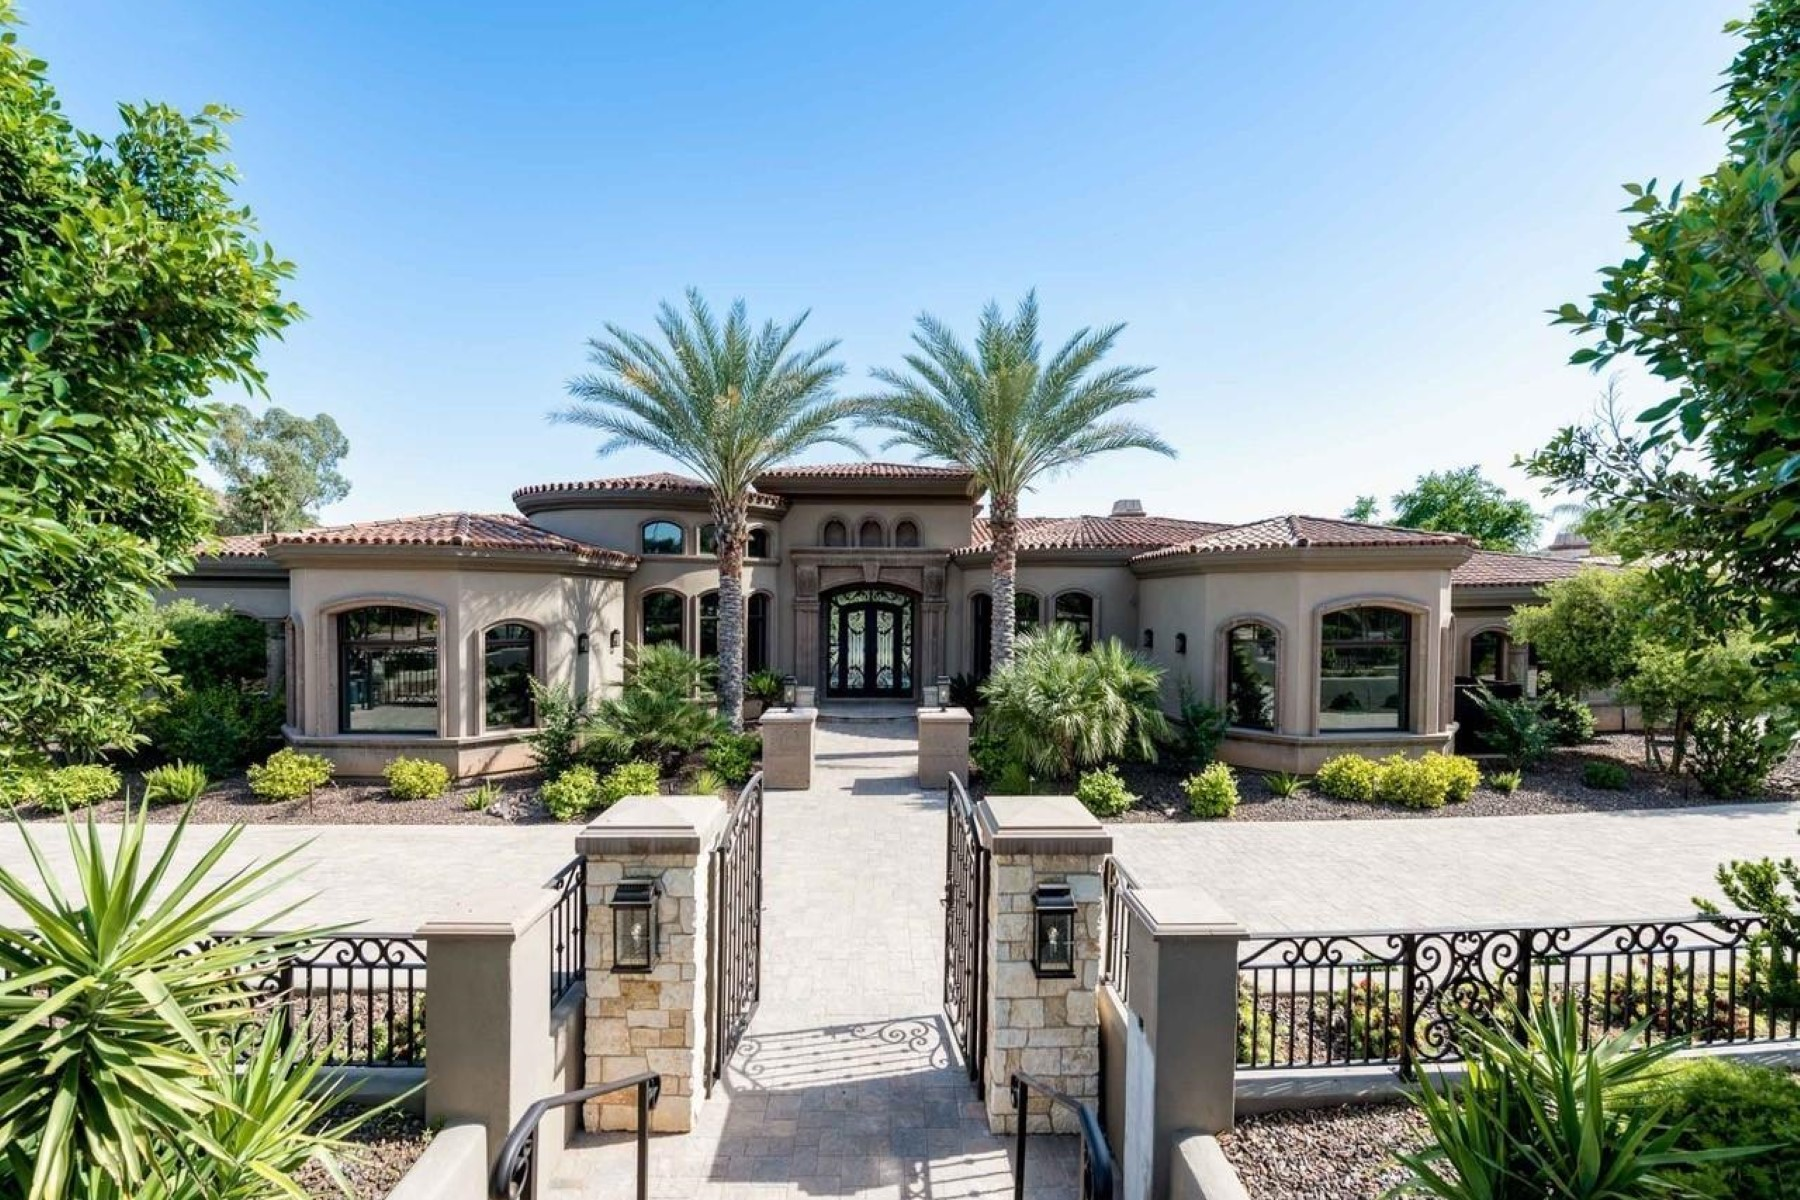 Single Family Homes for Sale at Paradise Hills 4825 E ROADRUNNER RD N Paradise Valley, Arizona 85253 United States